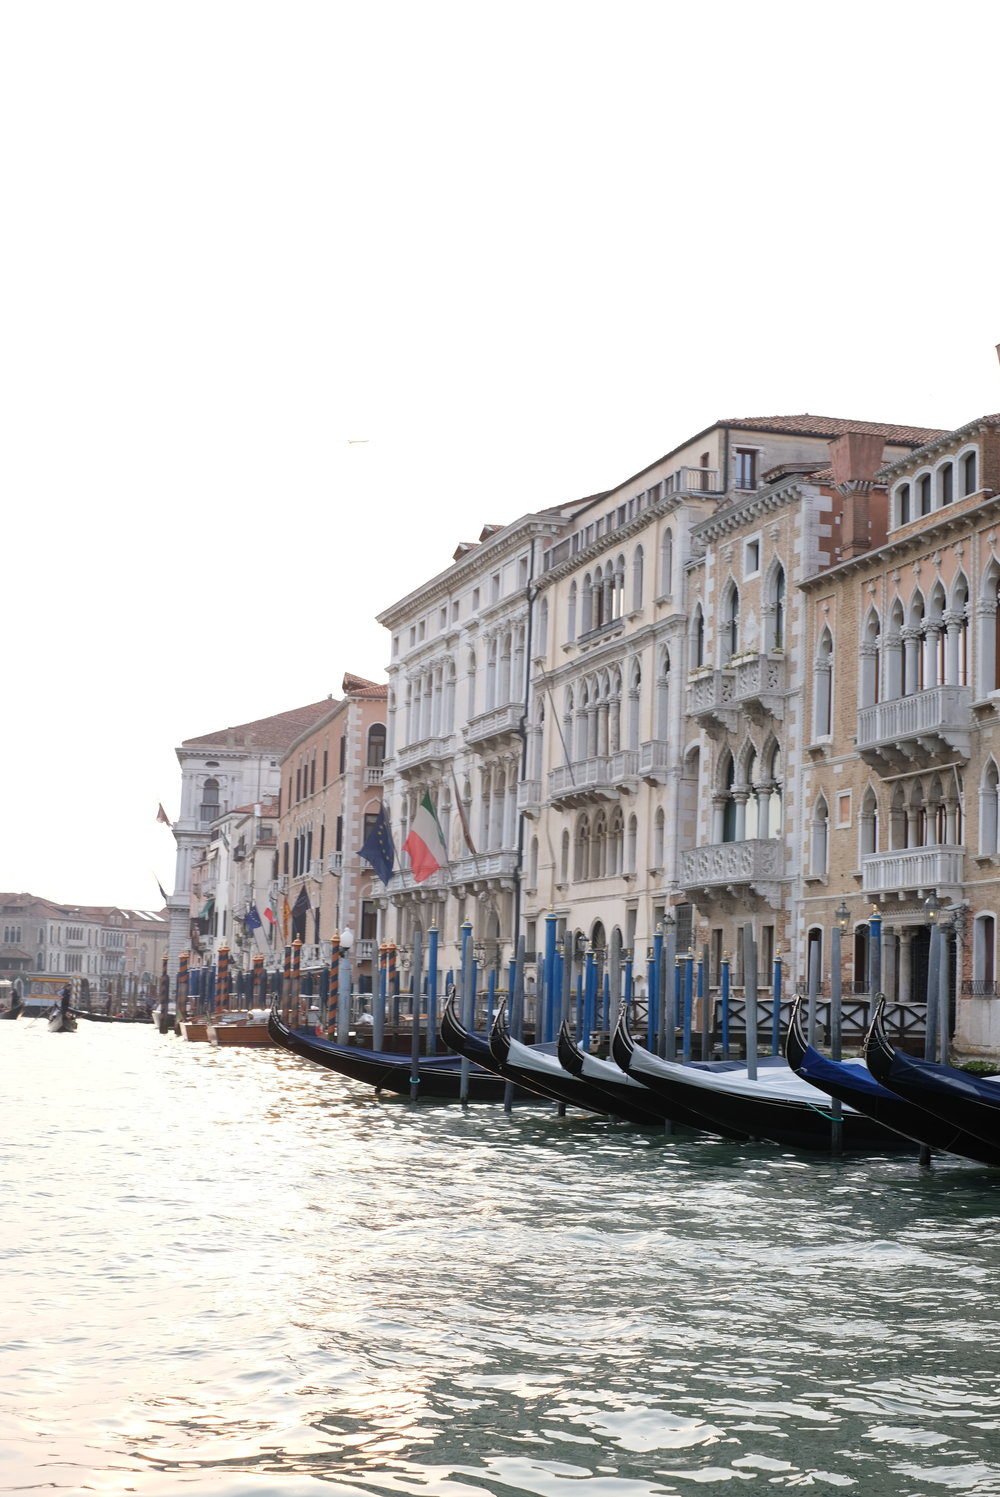 Vies from our private water taxi in Venice, Italy on the Grand Canale | Venice with Kids | Blog post by Totes and the City